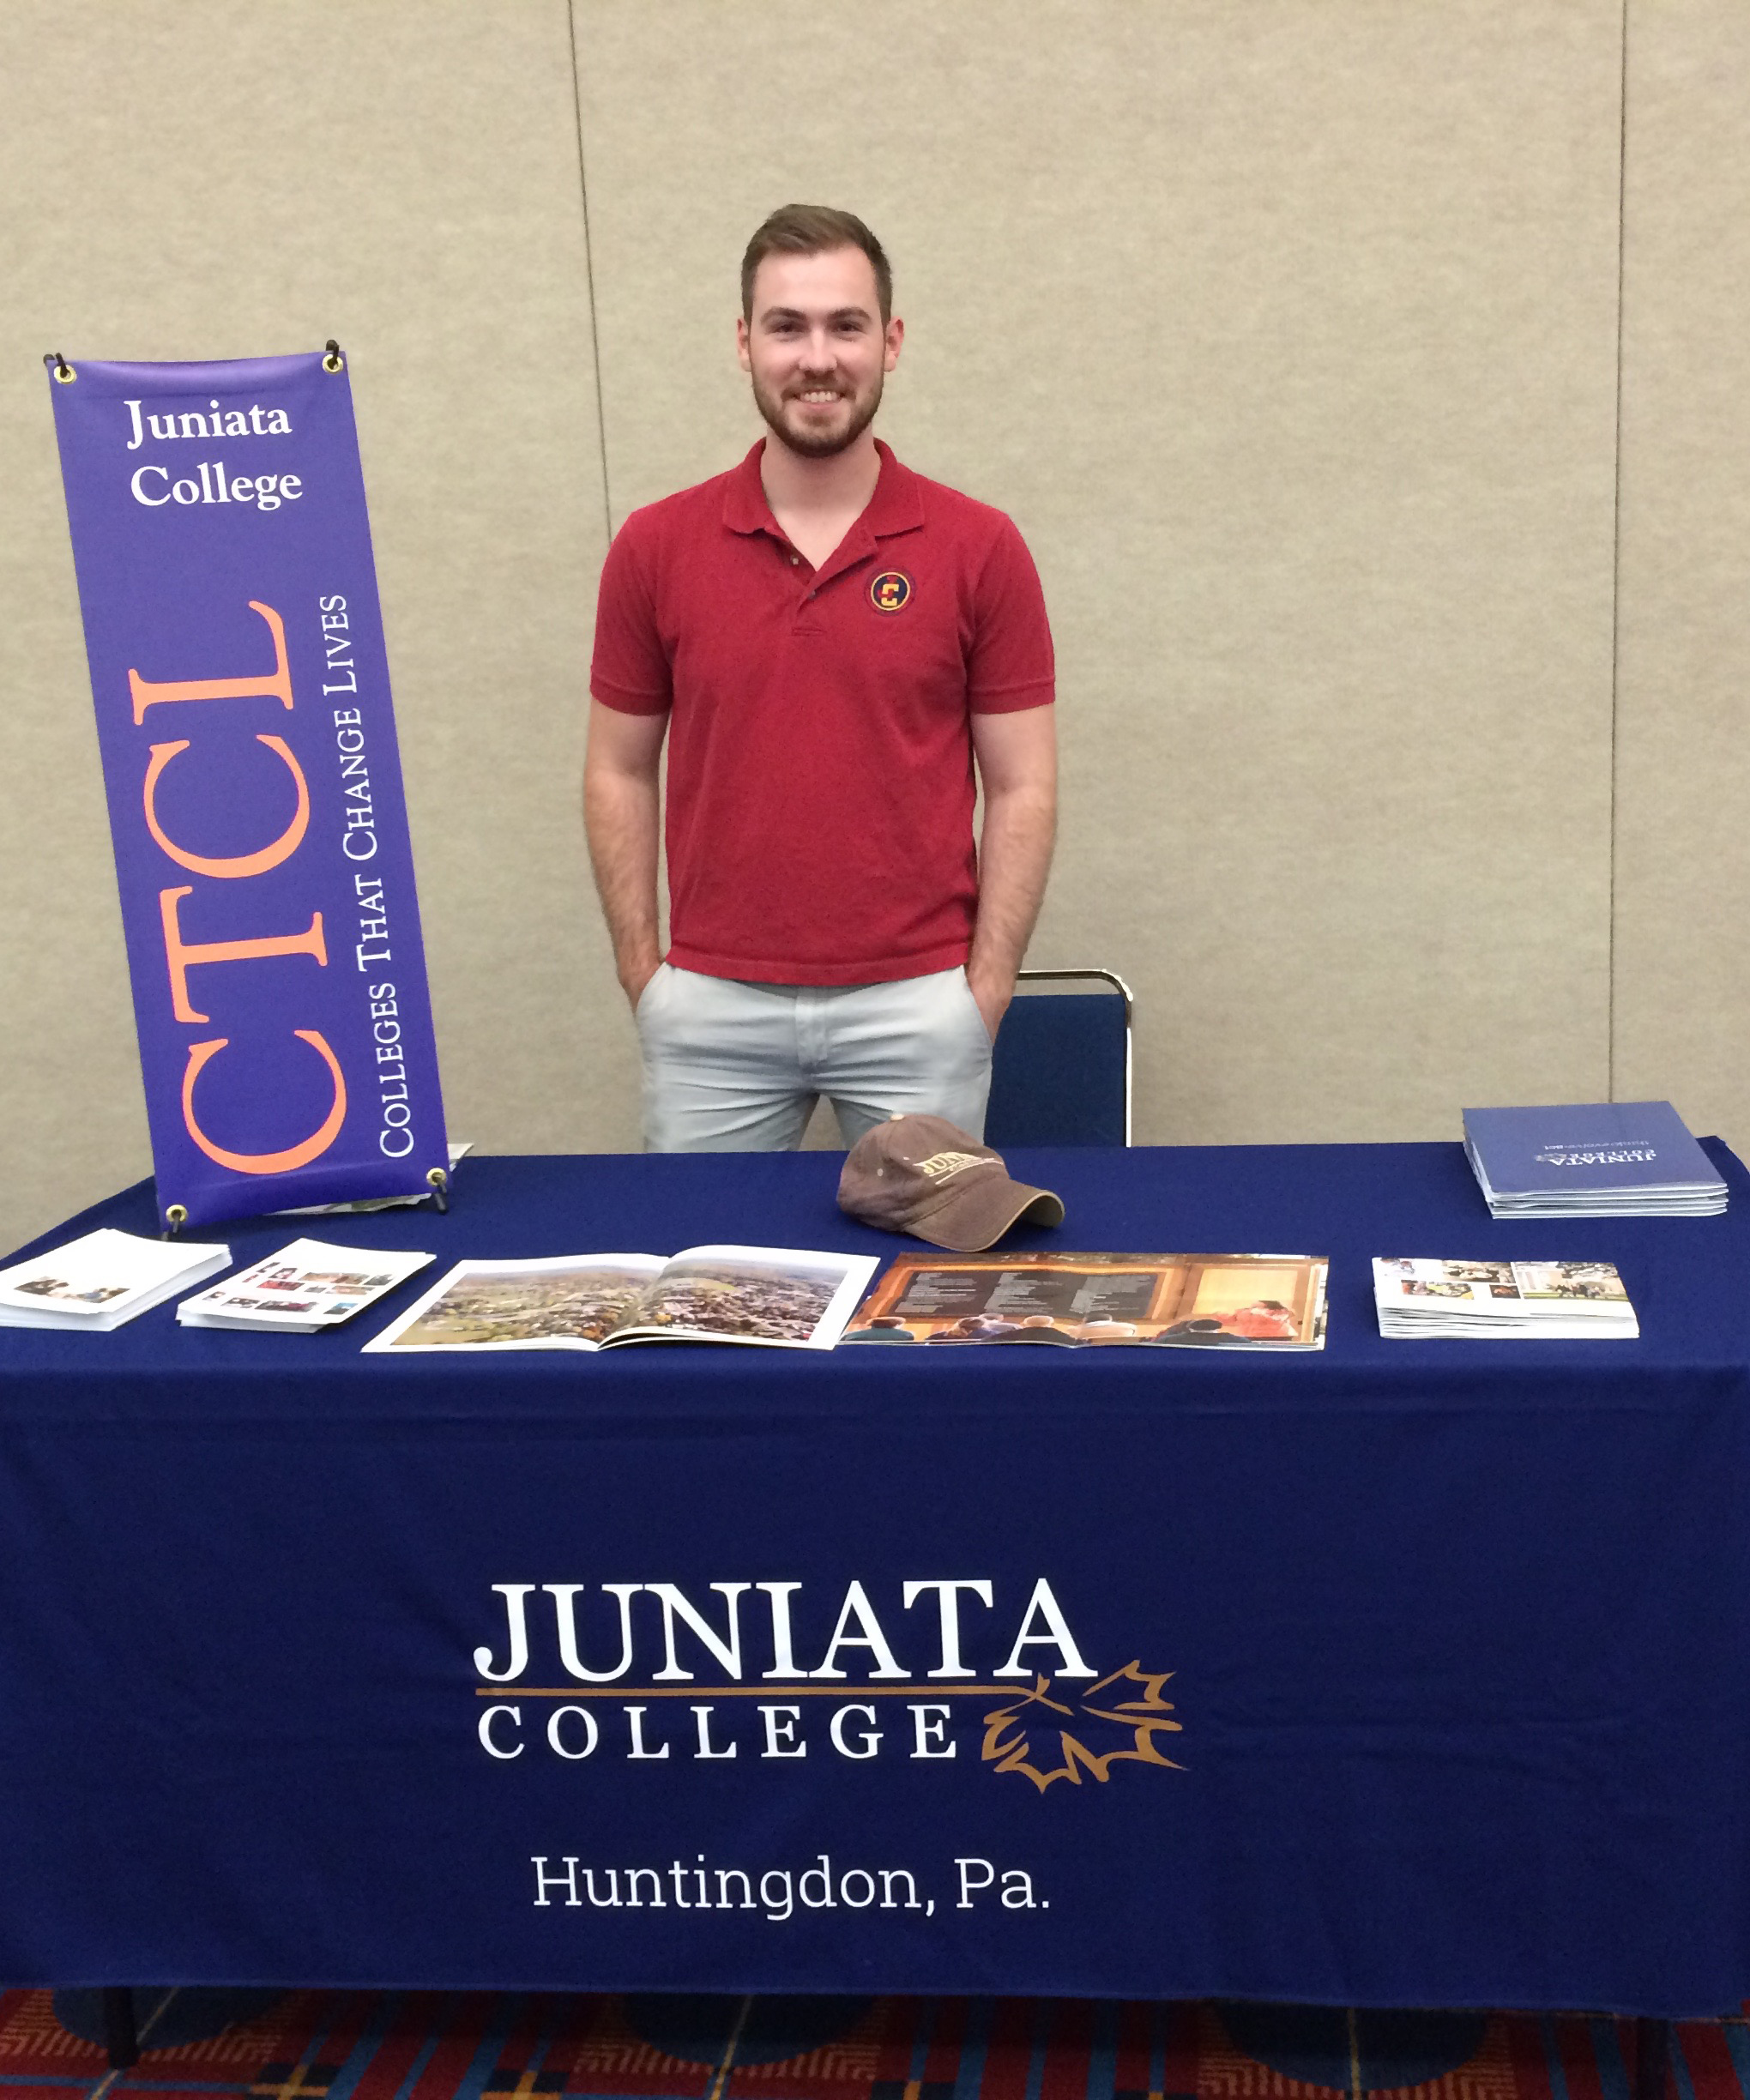 Josh Beckel representing Juniata College at a College Fair